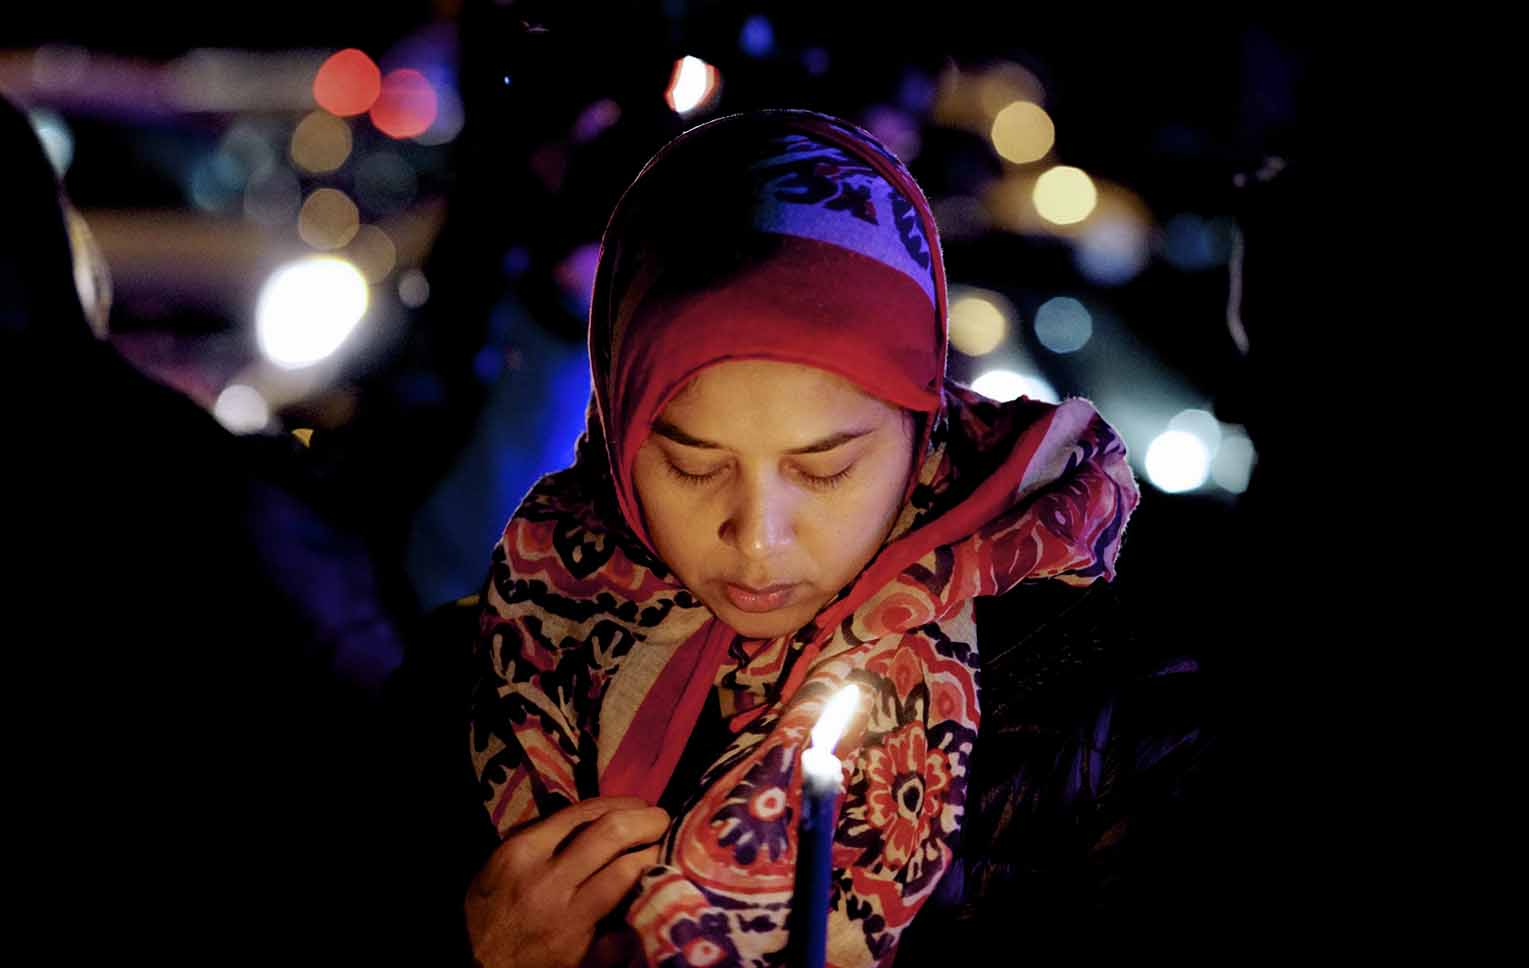 A Muslim woman at a vigil holds a candle and bows her head